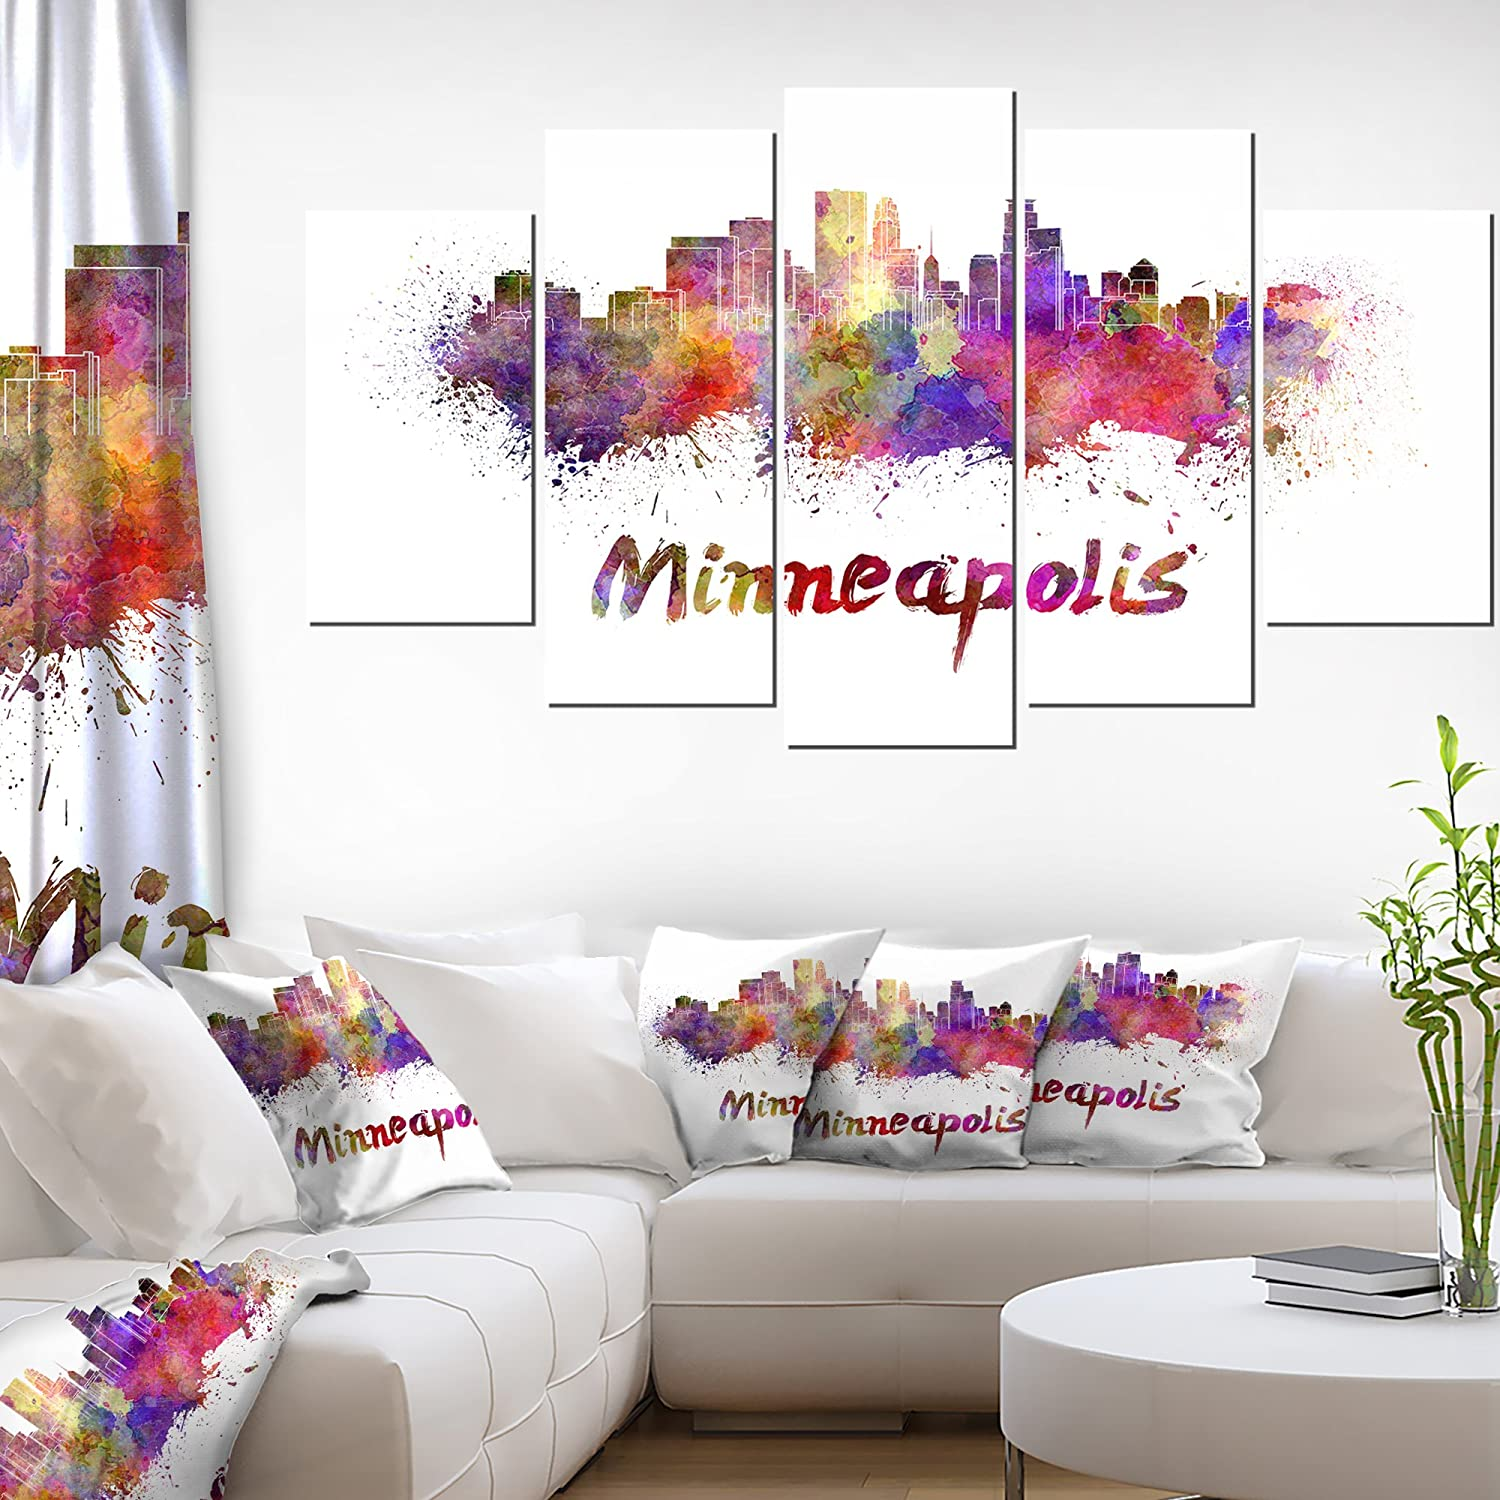 Amazon.com: Minneapolis Skyline Cityscape on Canvas Art Wall ...